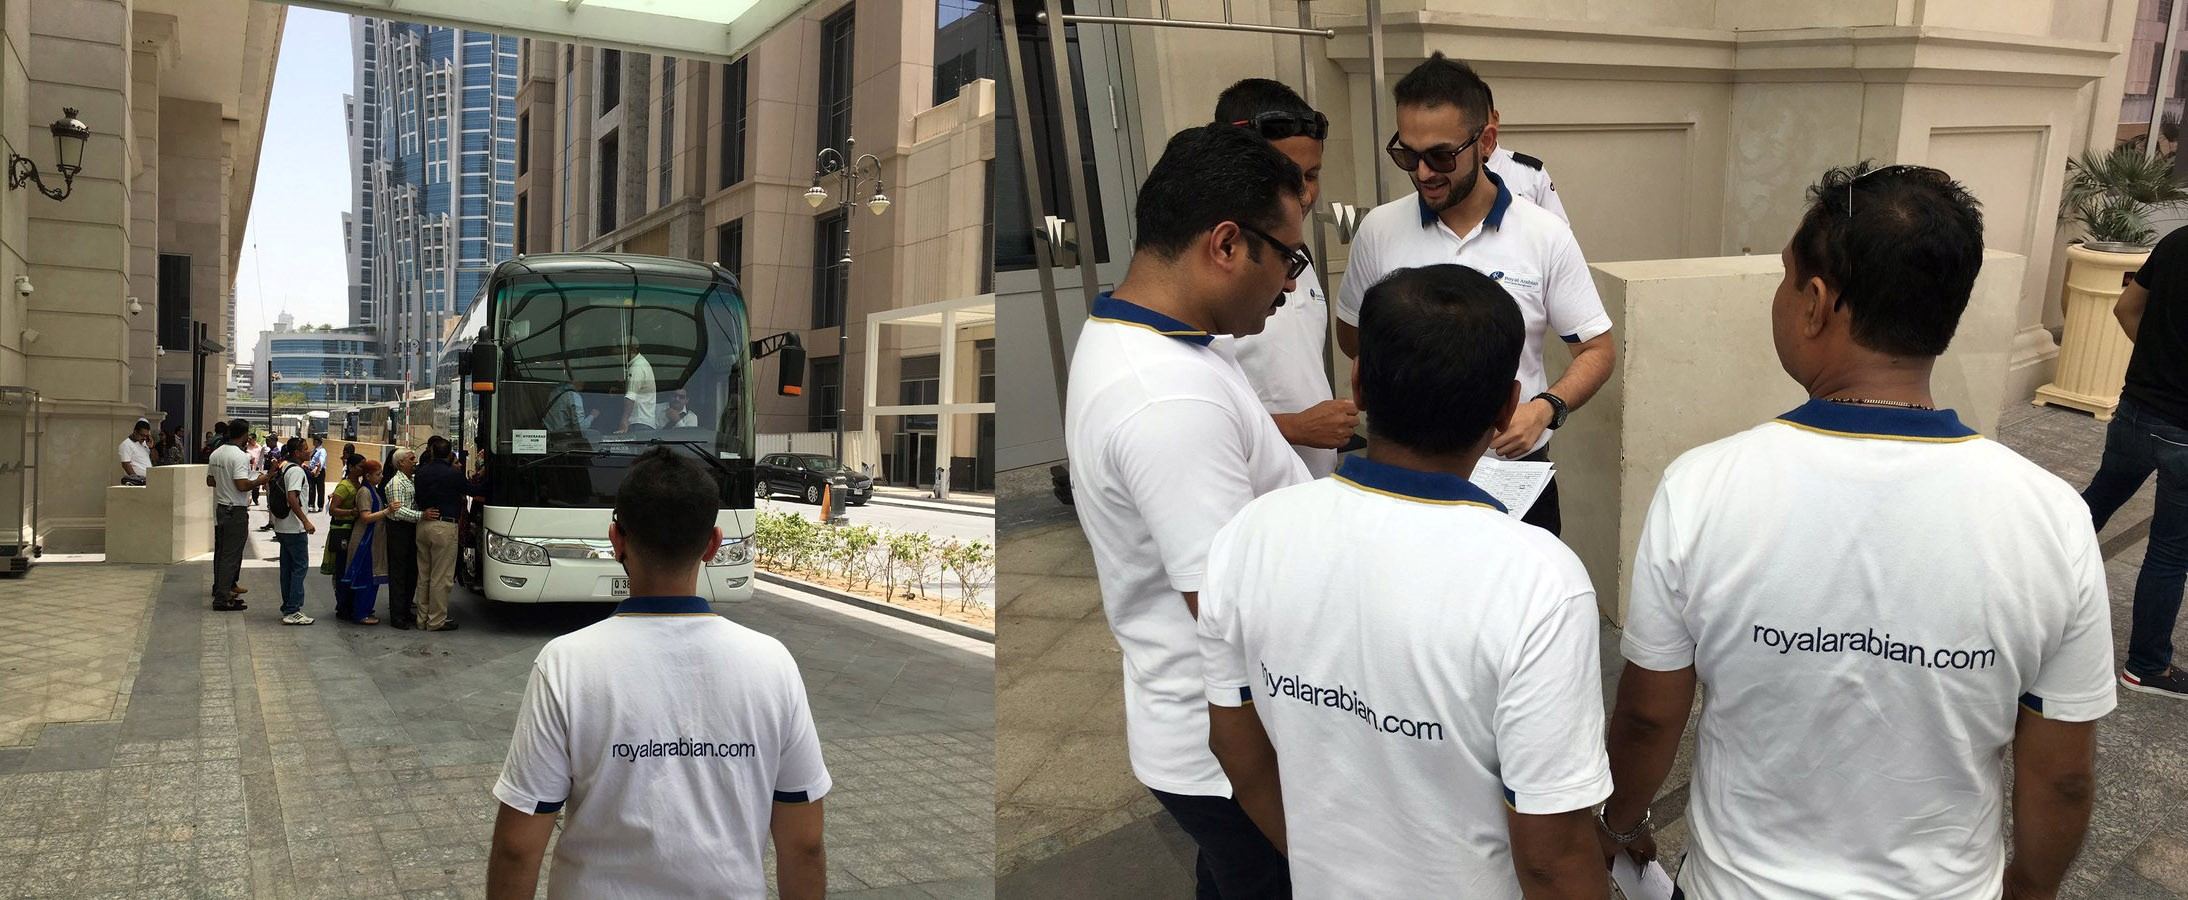 Image of Royal Arabian Faculty busy discussing about the tour plan with the team and with bus ready for the ride